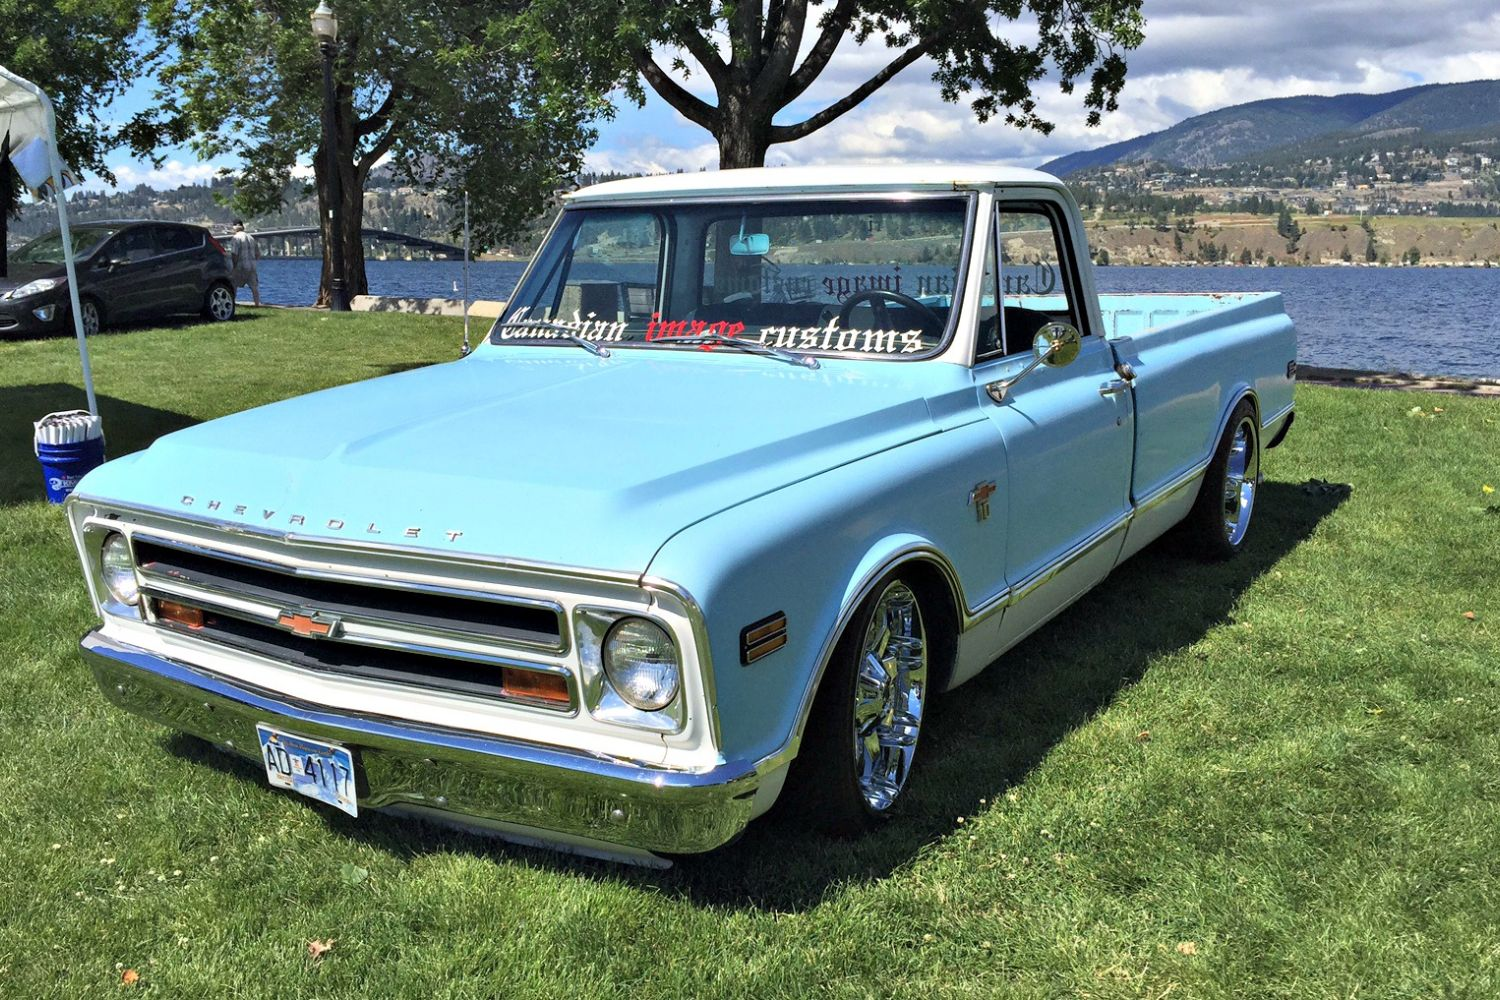 1968 Chevrolet C10 Lowrider Canadian Image Customs Chevy Suspension